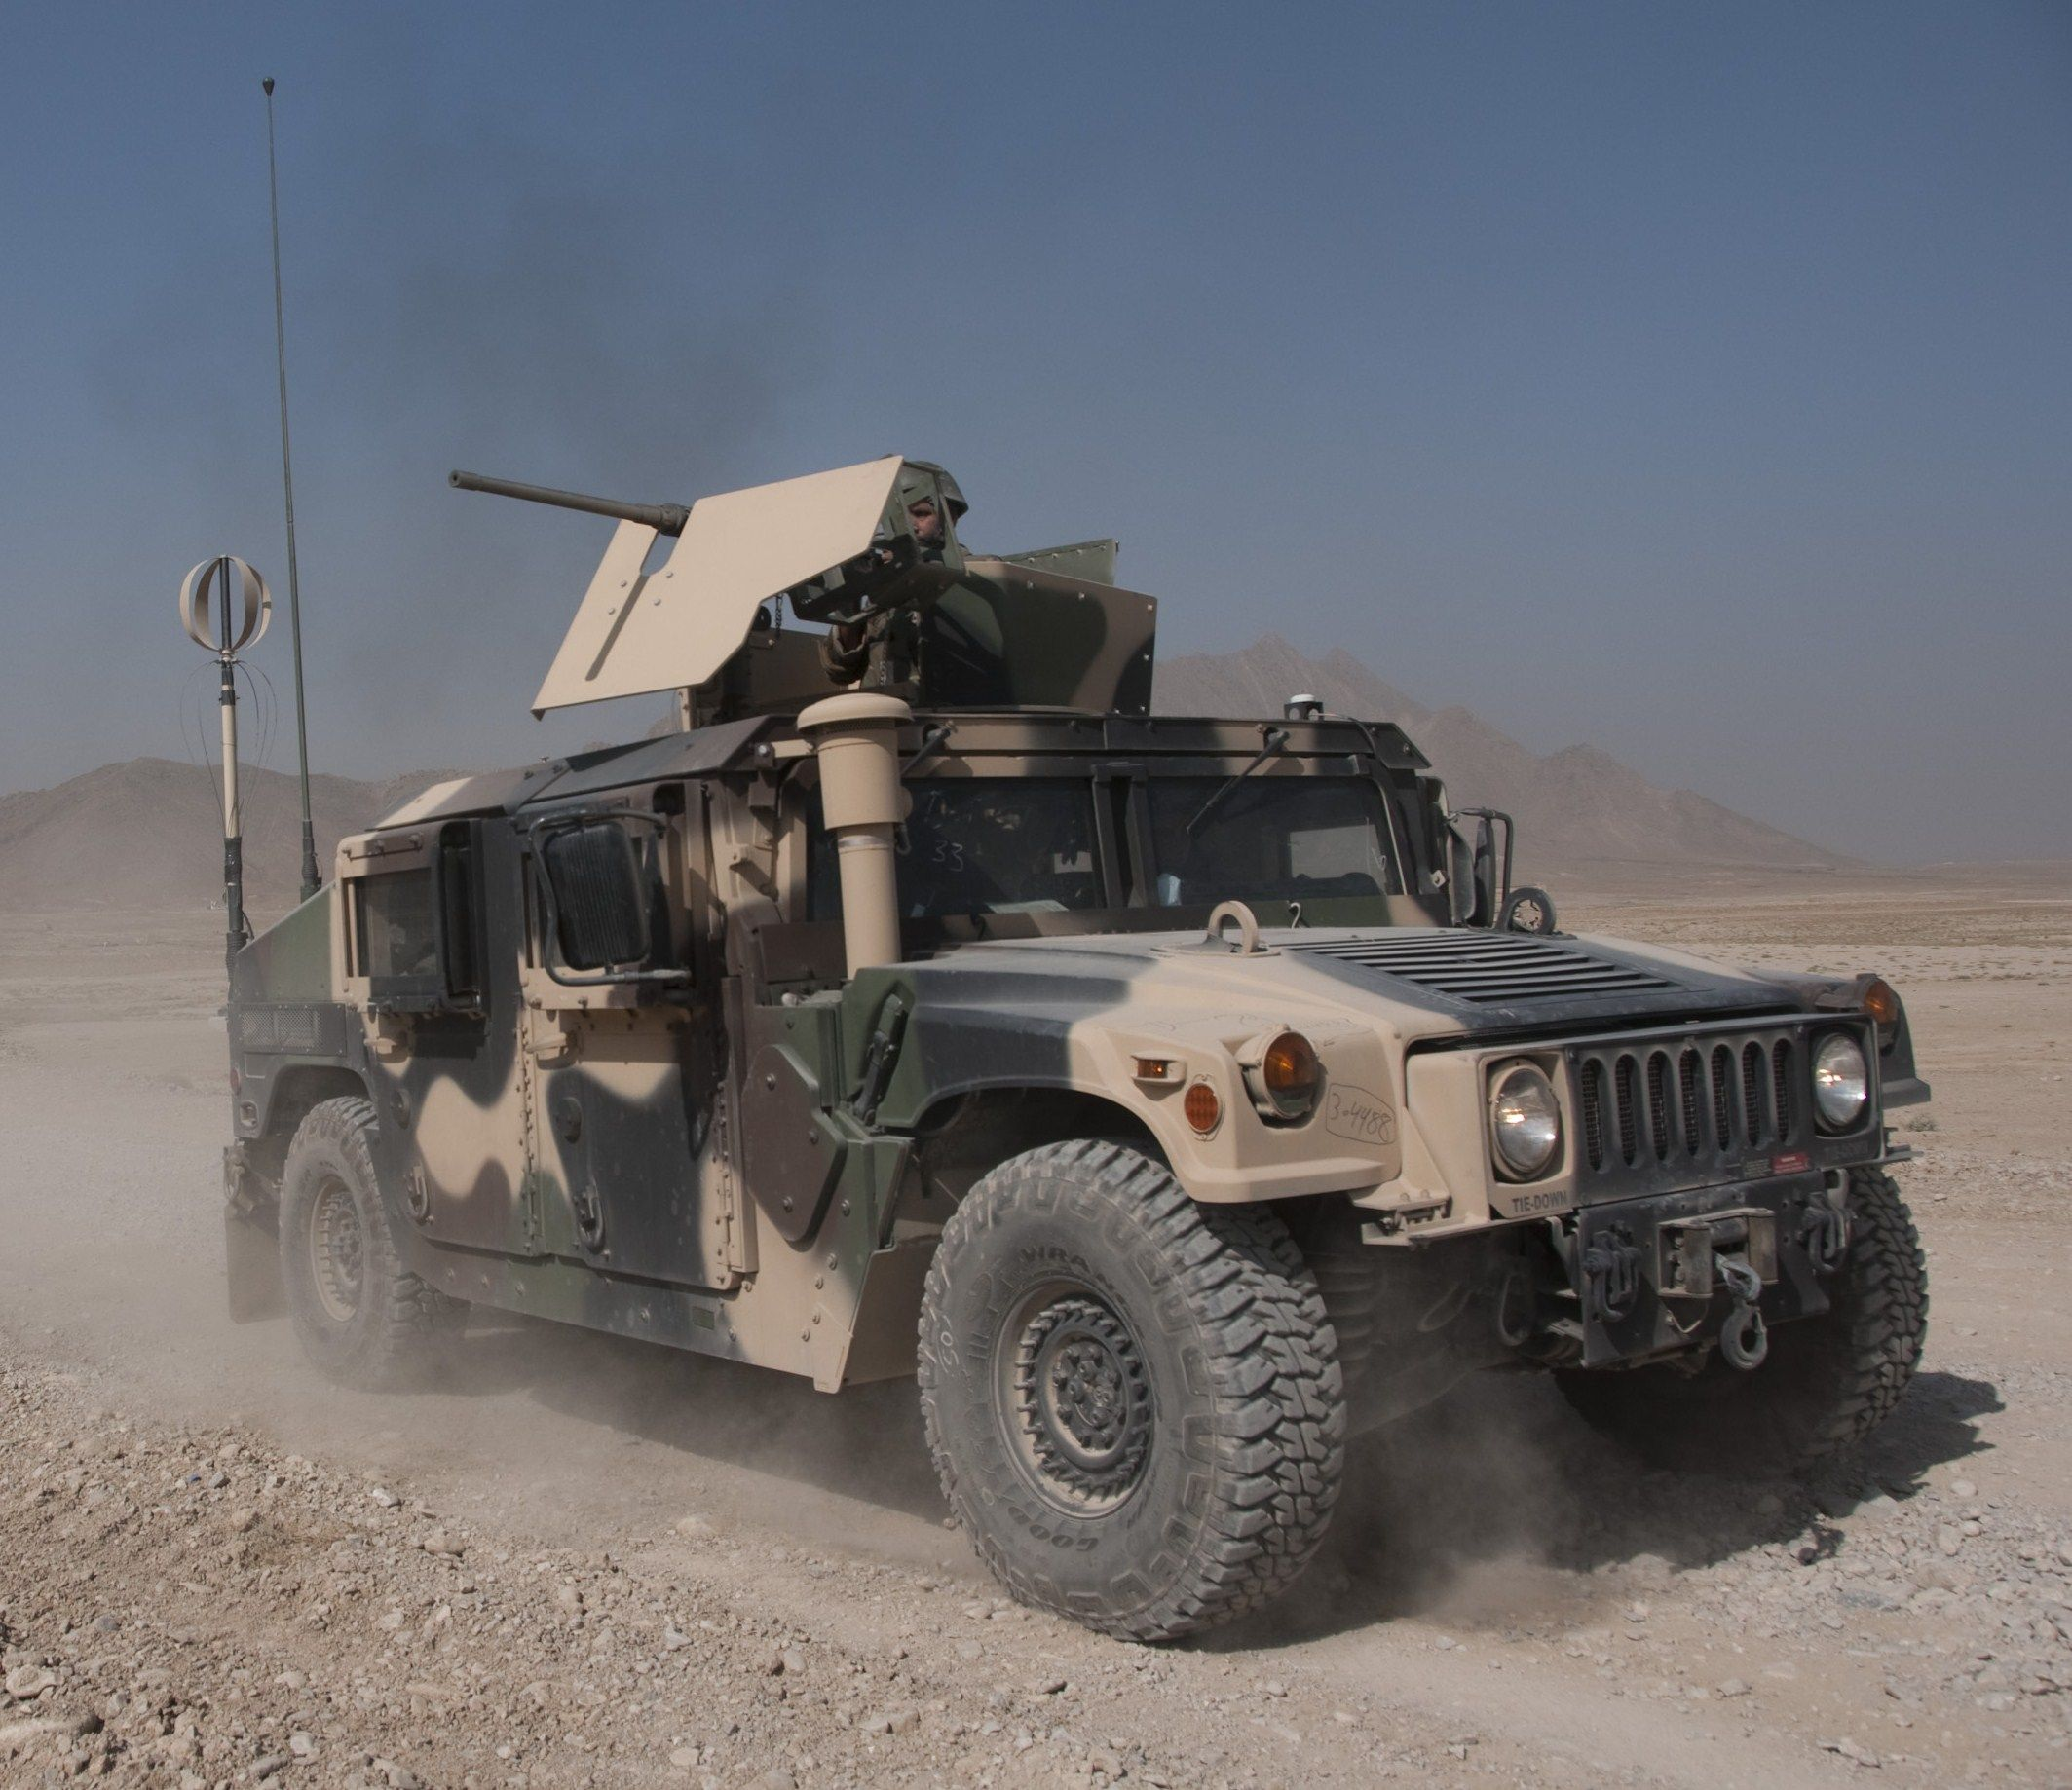 Humvee with mounted machine gun turret